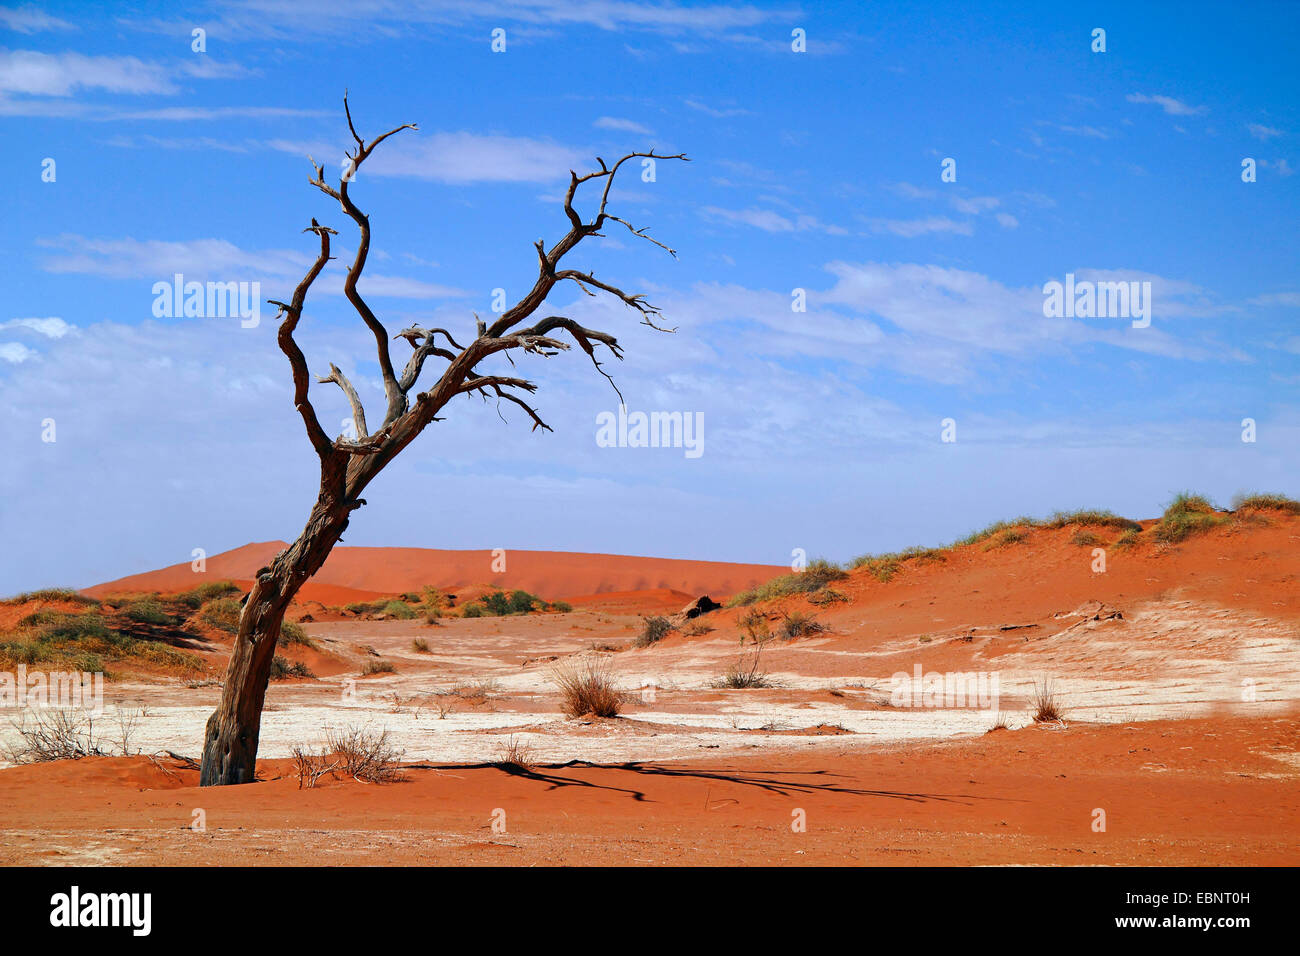 dead tree in the desert, Namibia, Namib Naukluft National Park, Sossusvlei - Stock Image